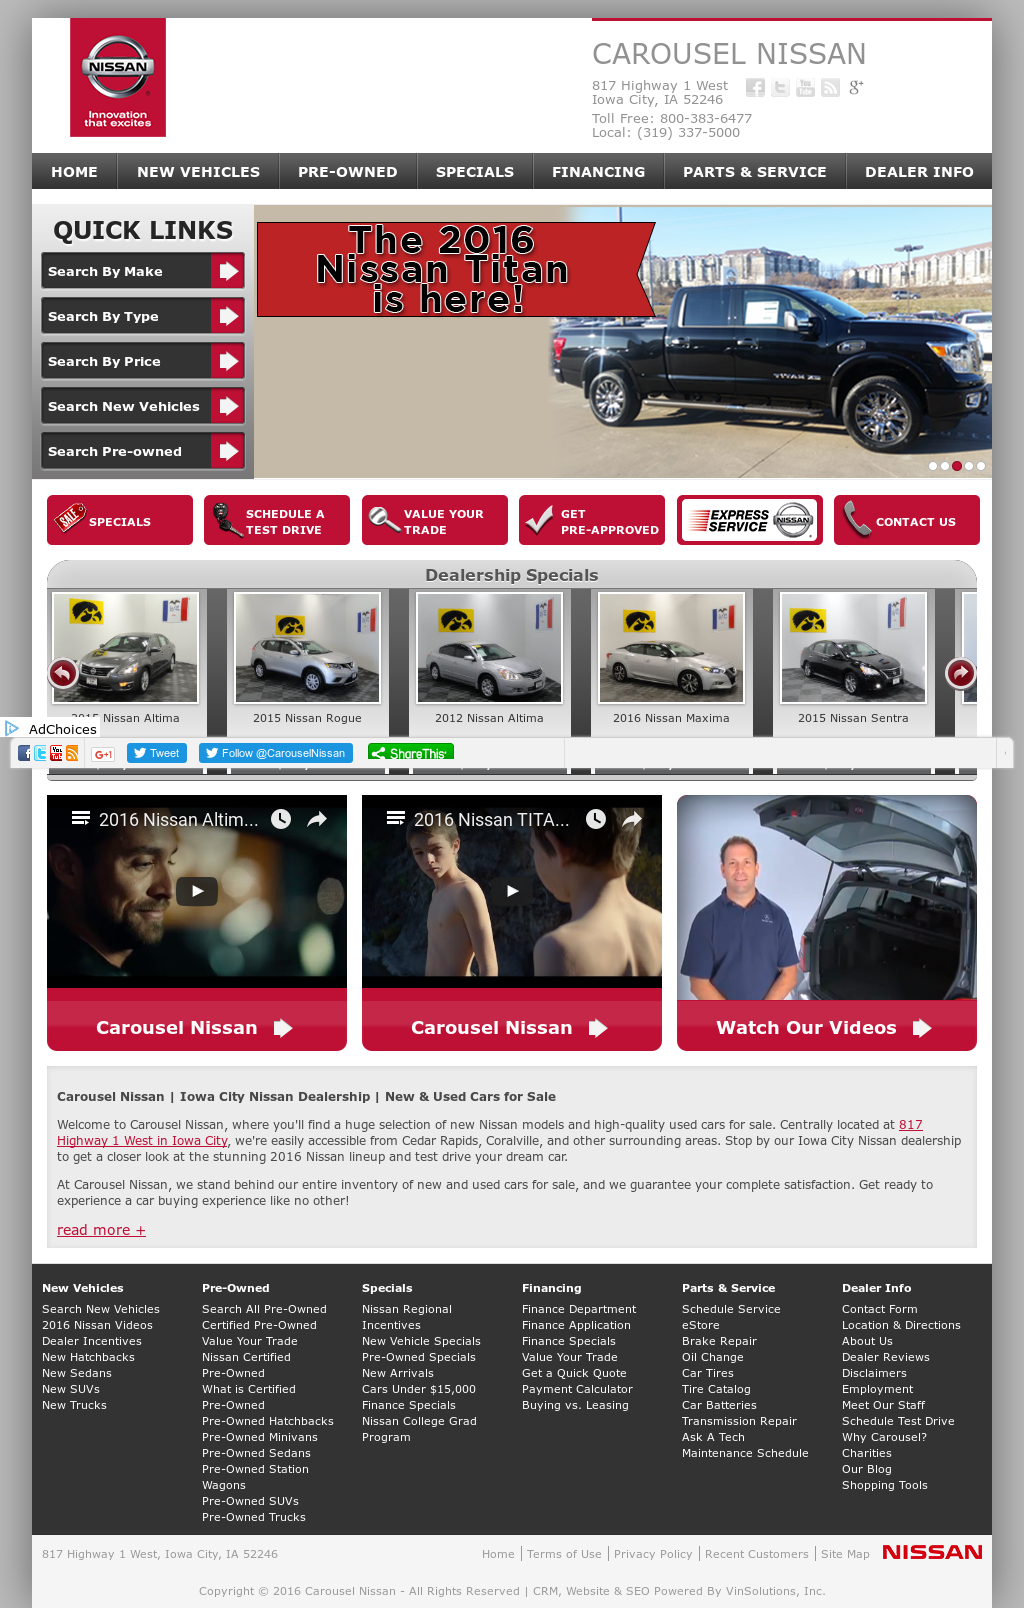 Carousel Motors Iowa City >> Carousel Nissan Iowa City ~ Perfect Nissan